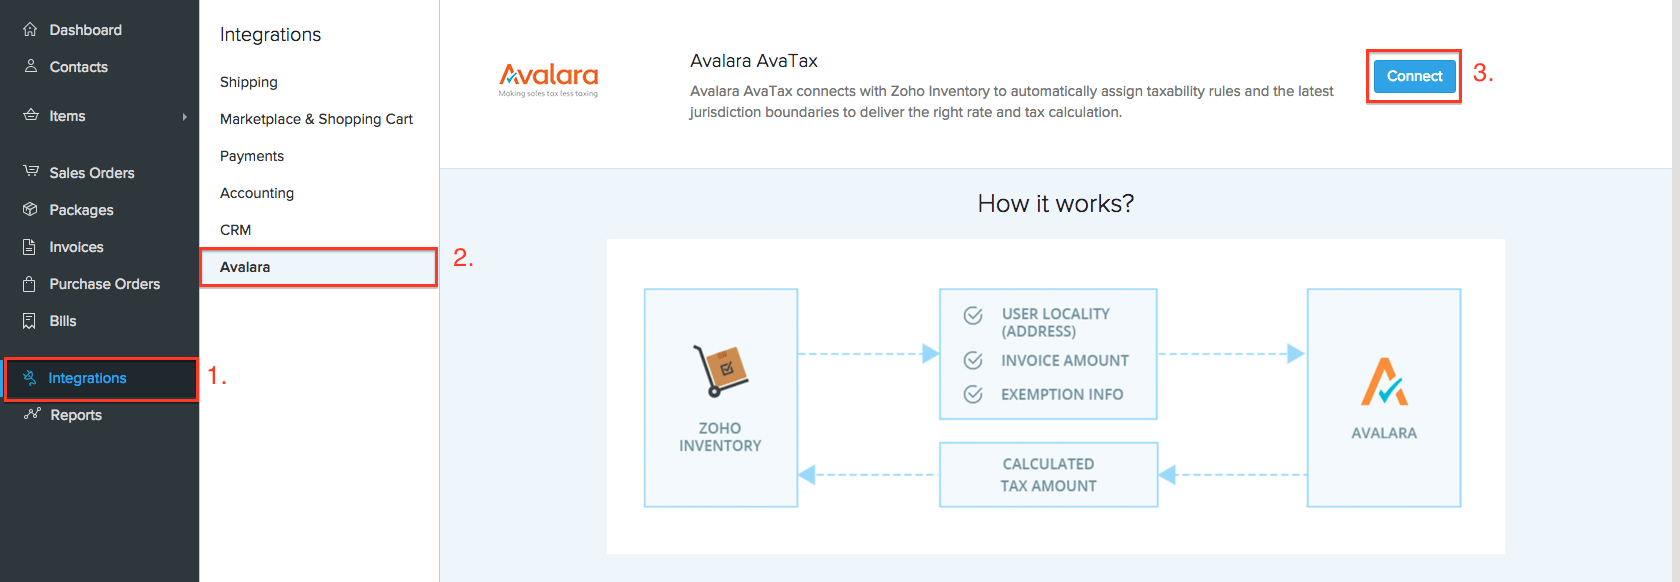 Setup Avalara from Integrations